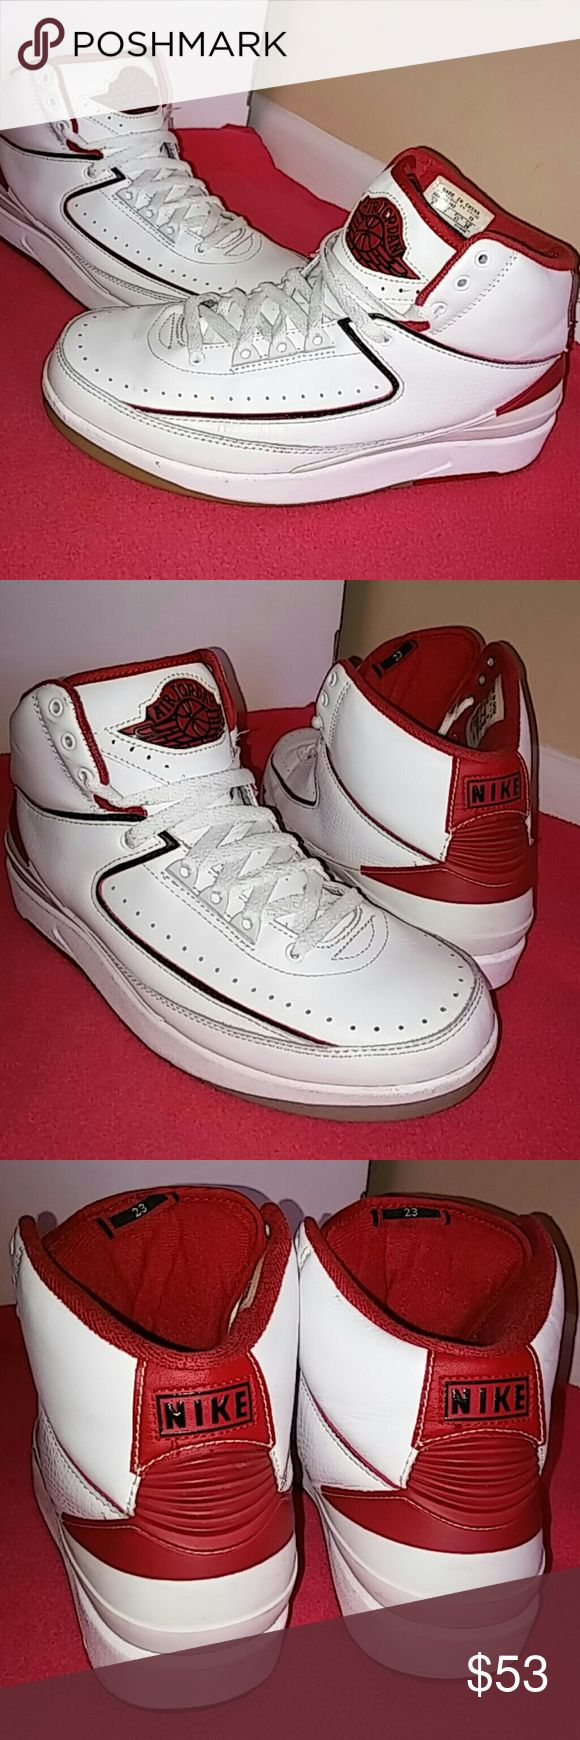 Nike Air Jordan Retro 2 Mid Top White Varsity Red. Very nice Retro 2....In awesome shape and solid in condition. Rated 8/10...Its flawless...showing minimal signs of use. Nike Shoes Sneakers